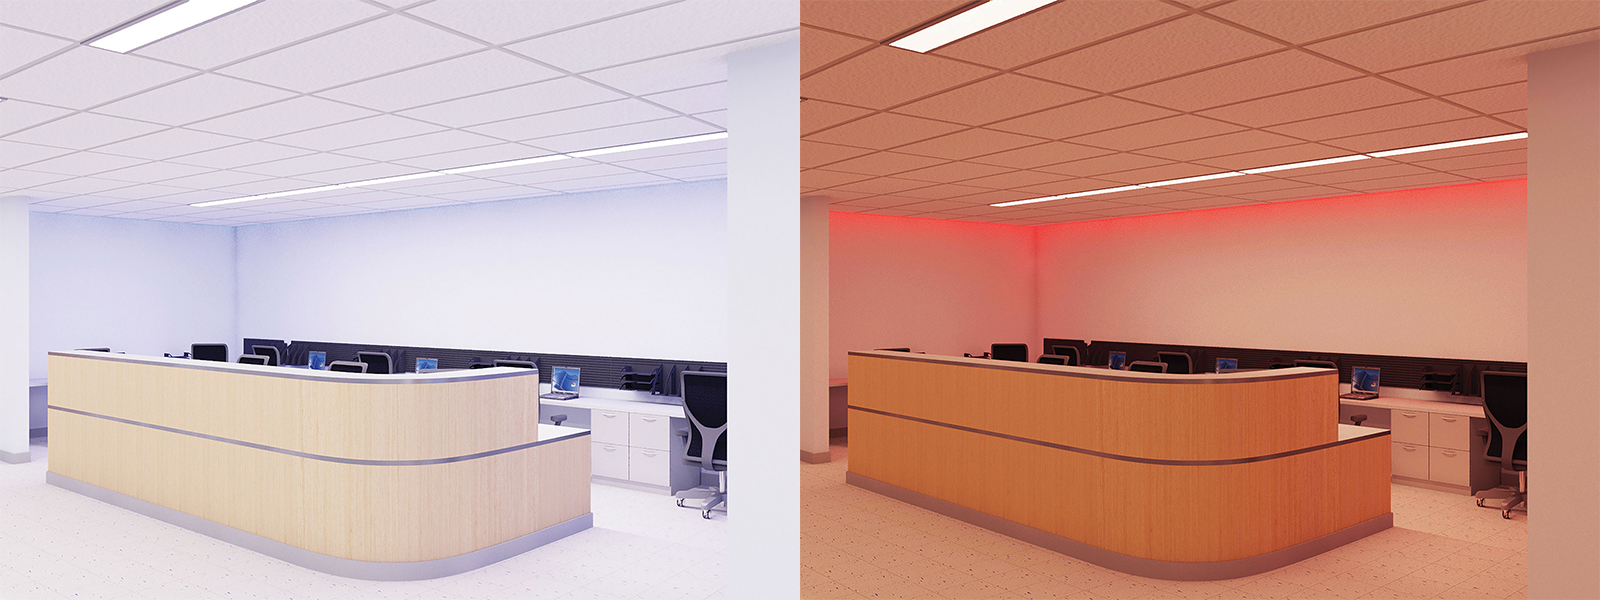 This nurse's station is illuminated for optimal circadian entrainment in the morning (left) and night (right), in this scenario using color-tunable lighting.